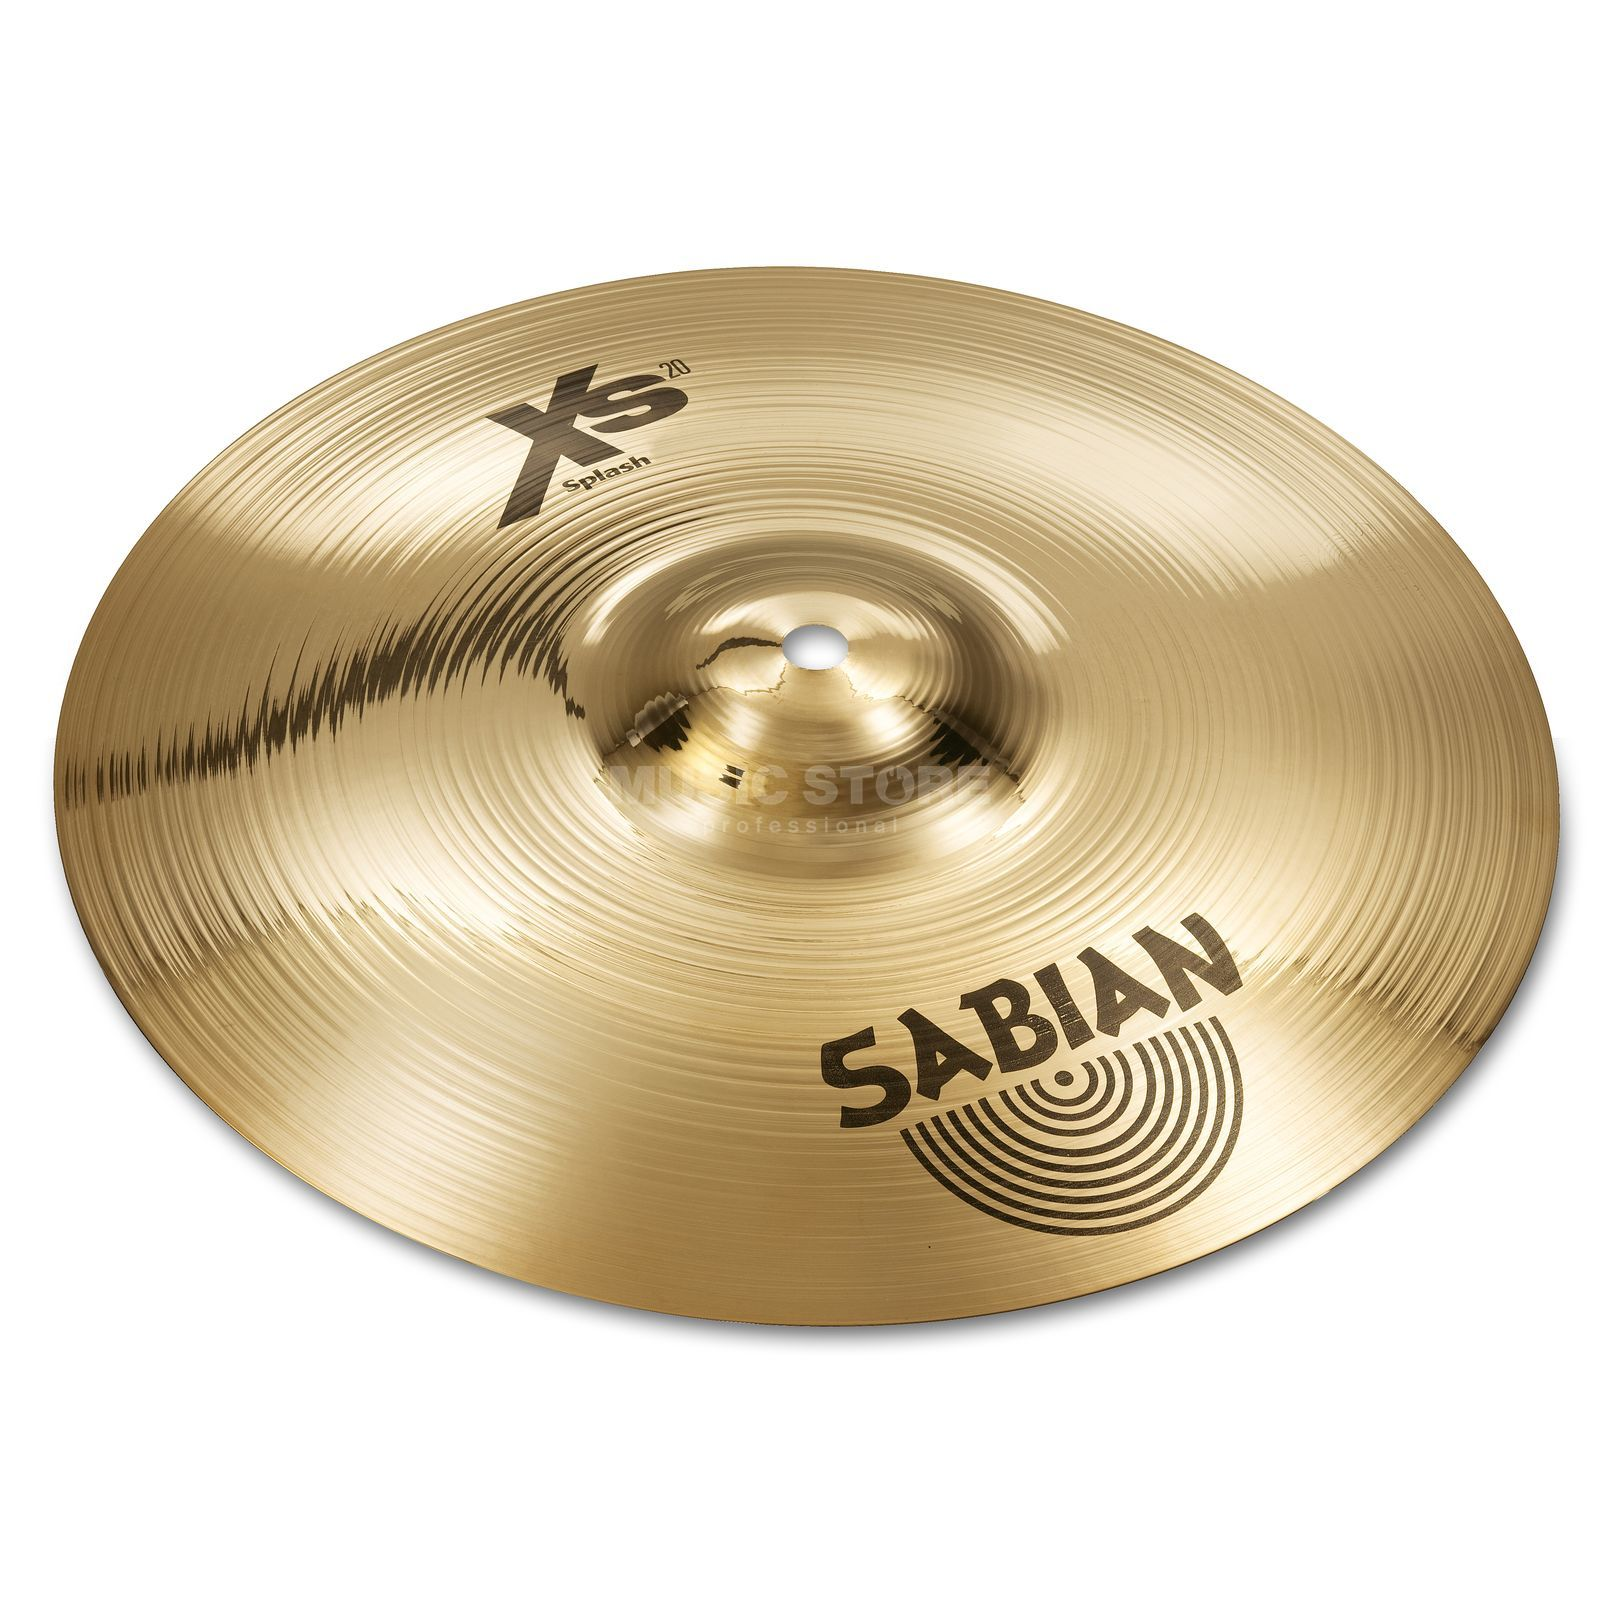 "Sabian XS20 Splash 10"", Brilliant Finish Изображение товара"